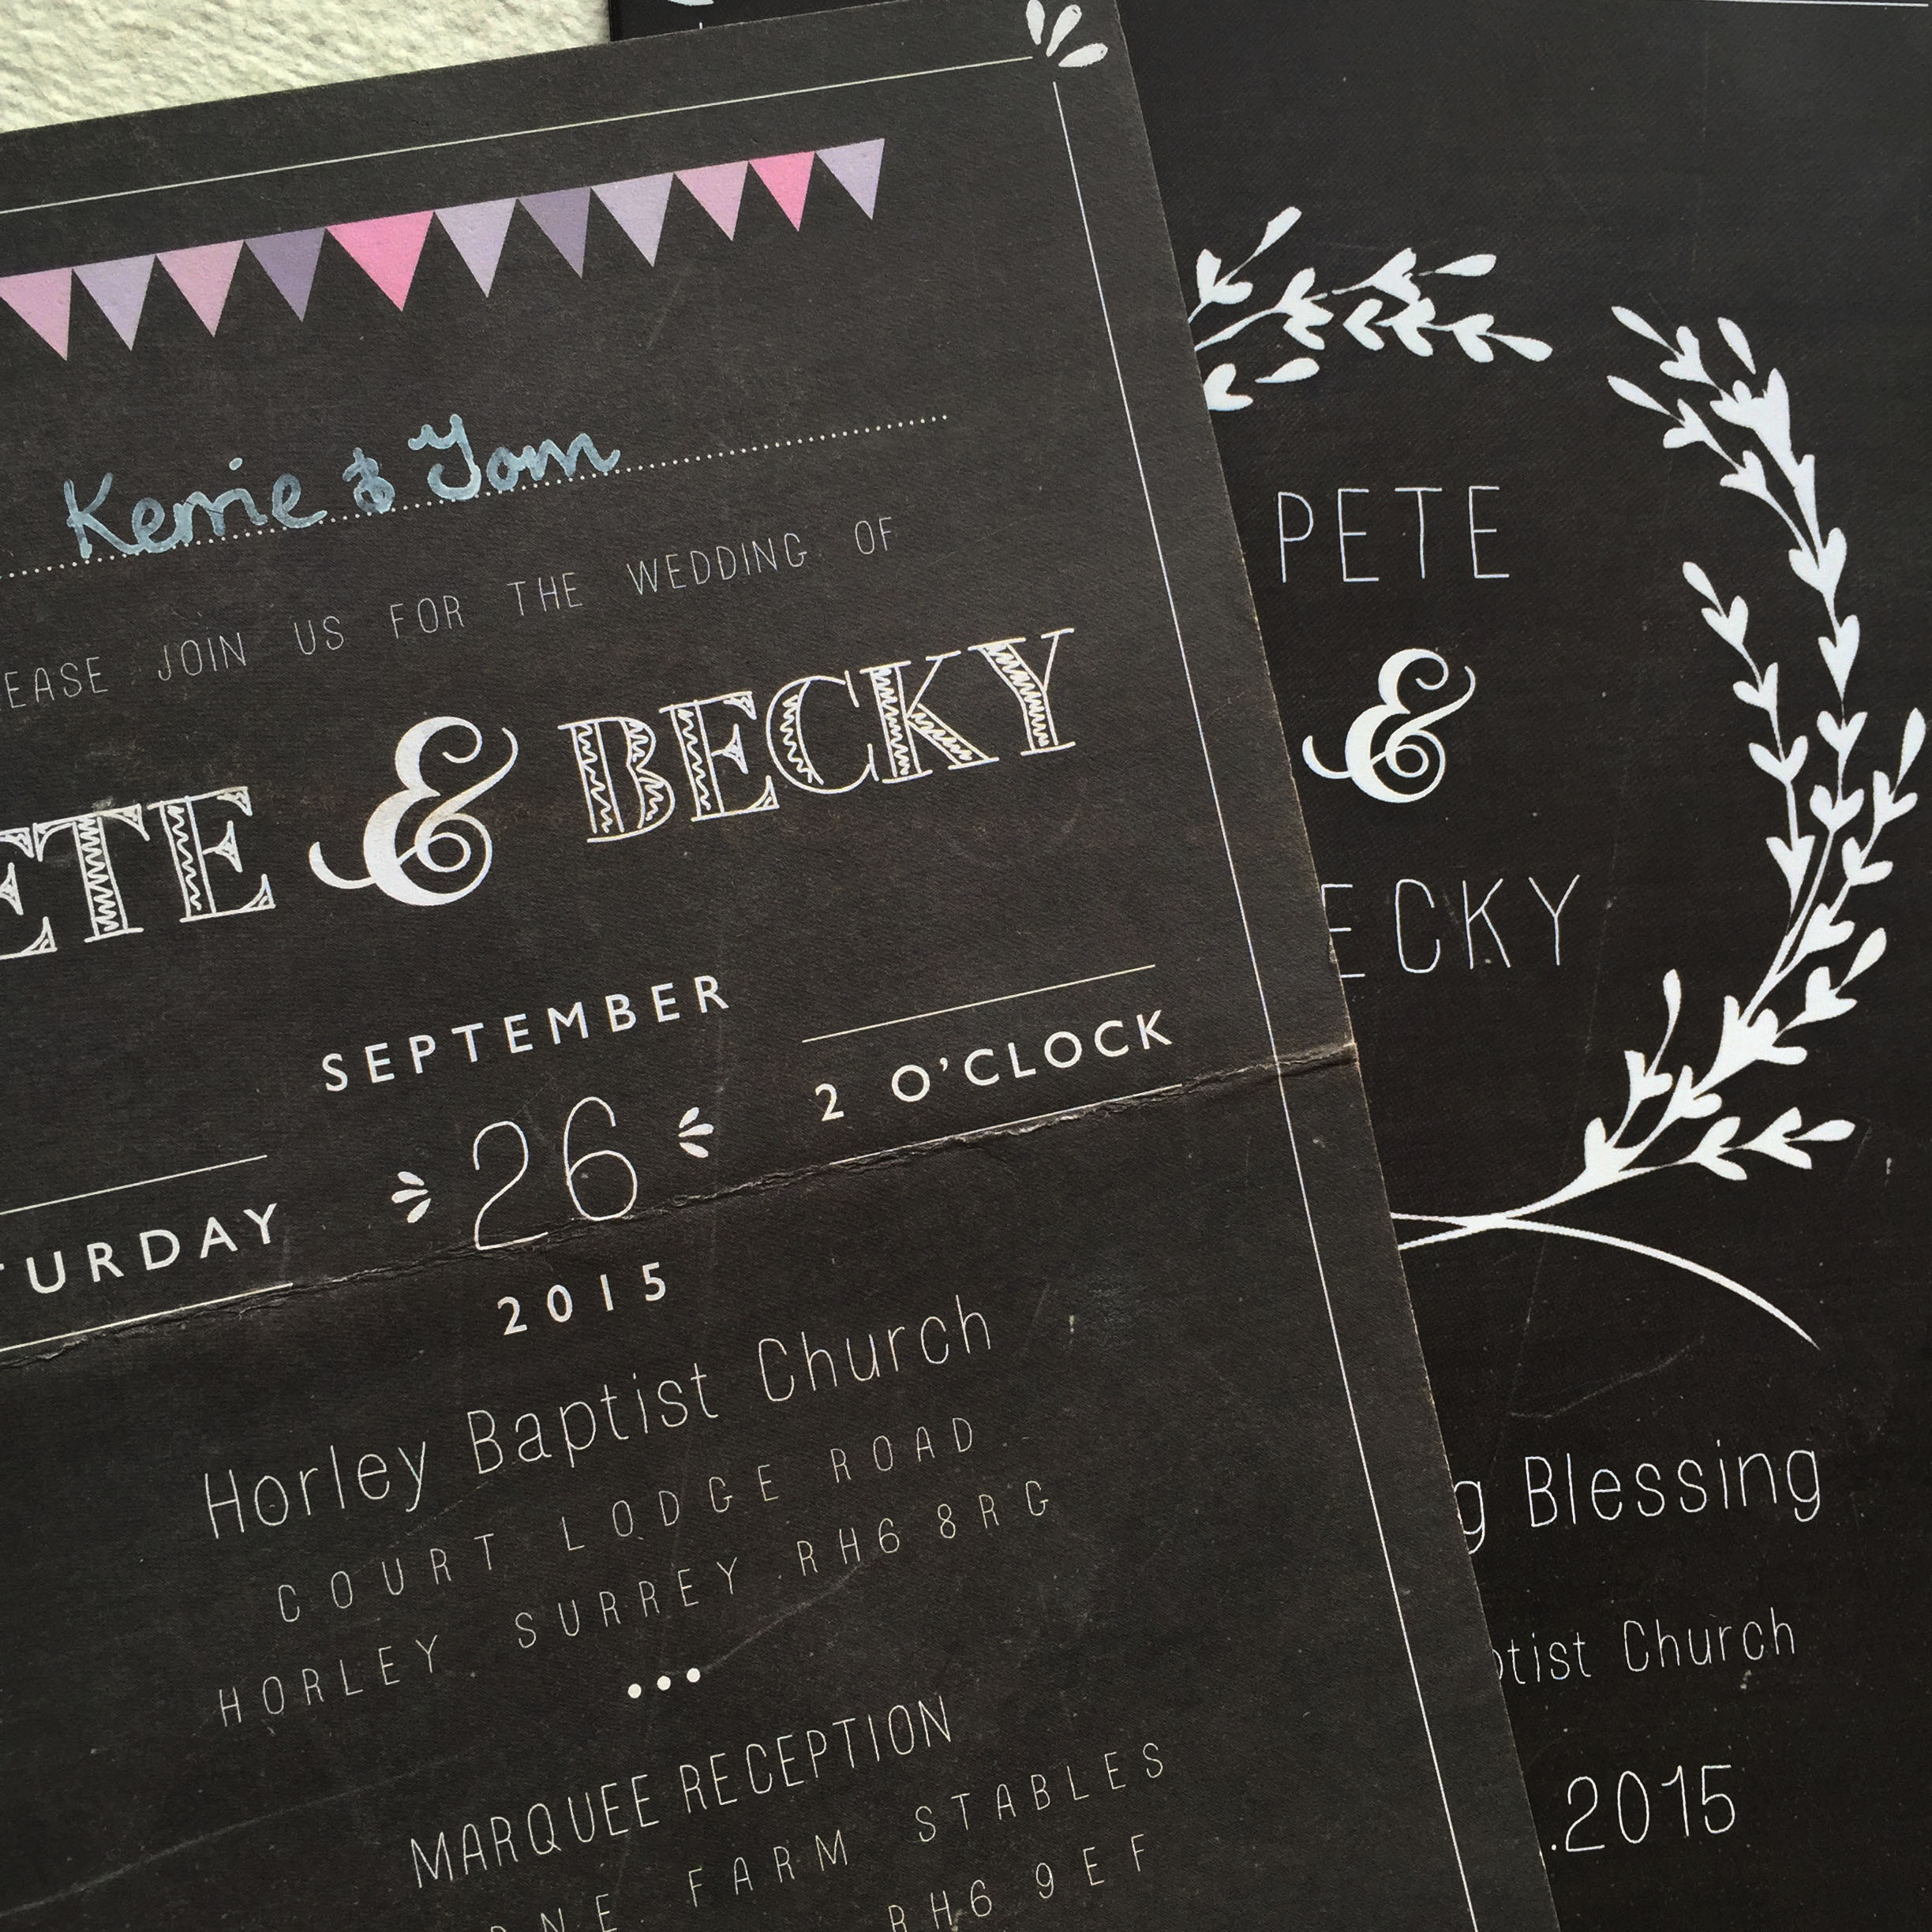 WEDDING_INVITATION.jpg